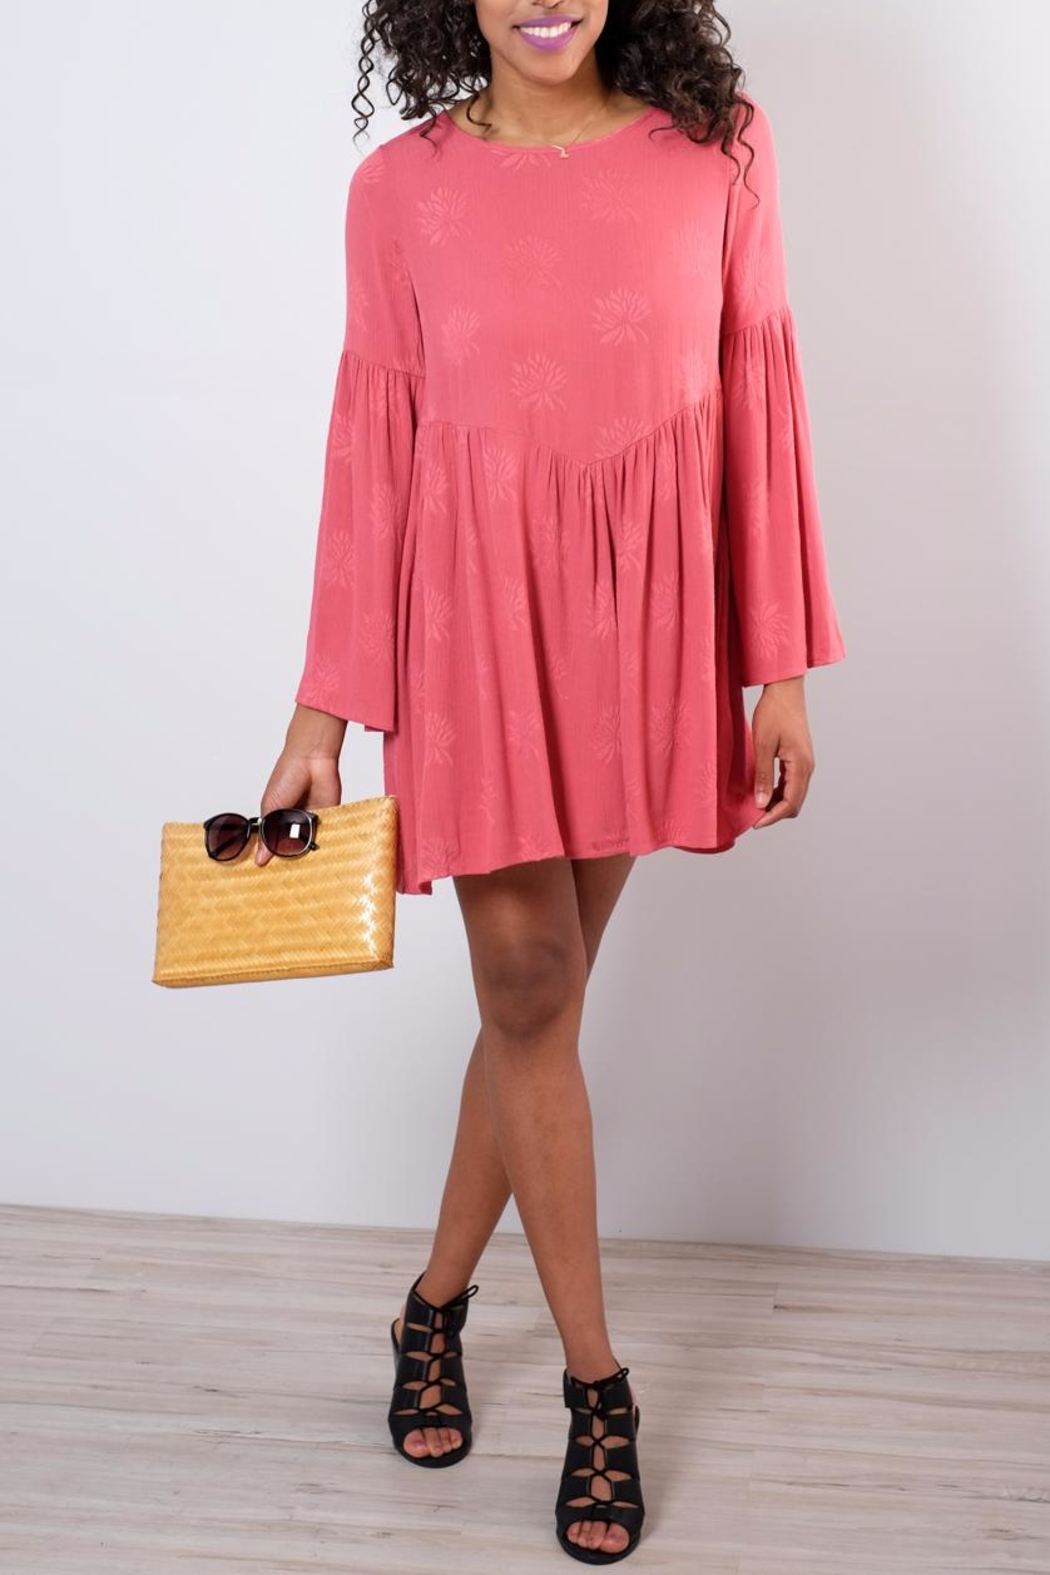 Audrey 3+1 Flare Sleeved Dress - Main Image